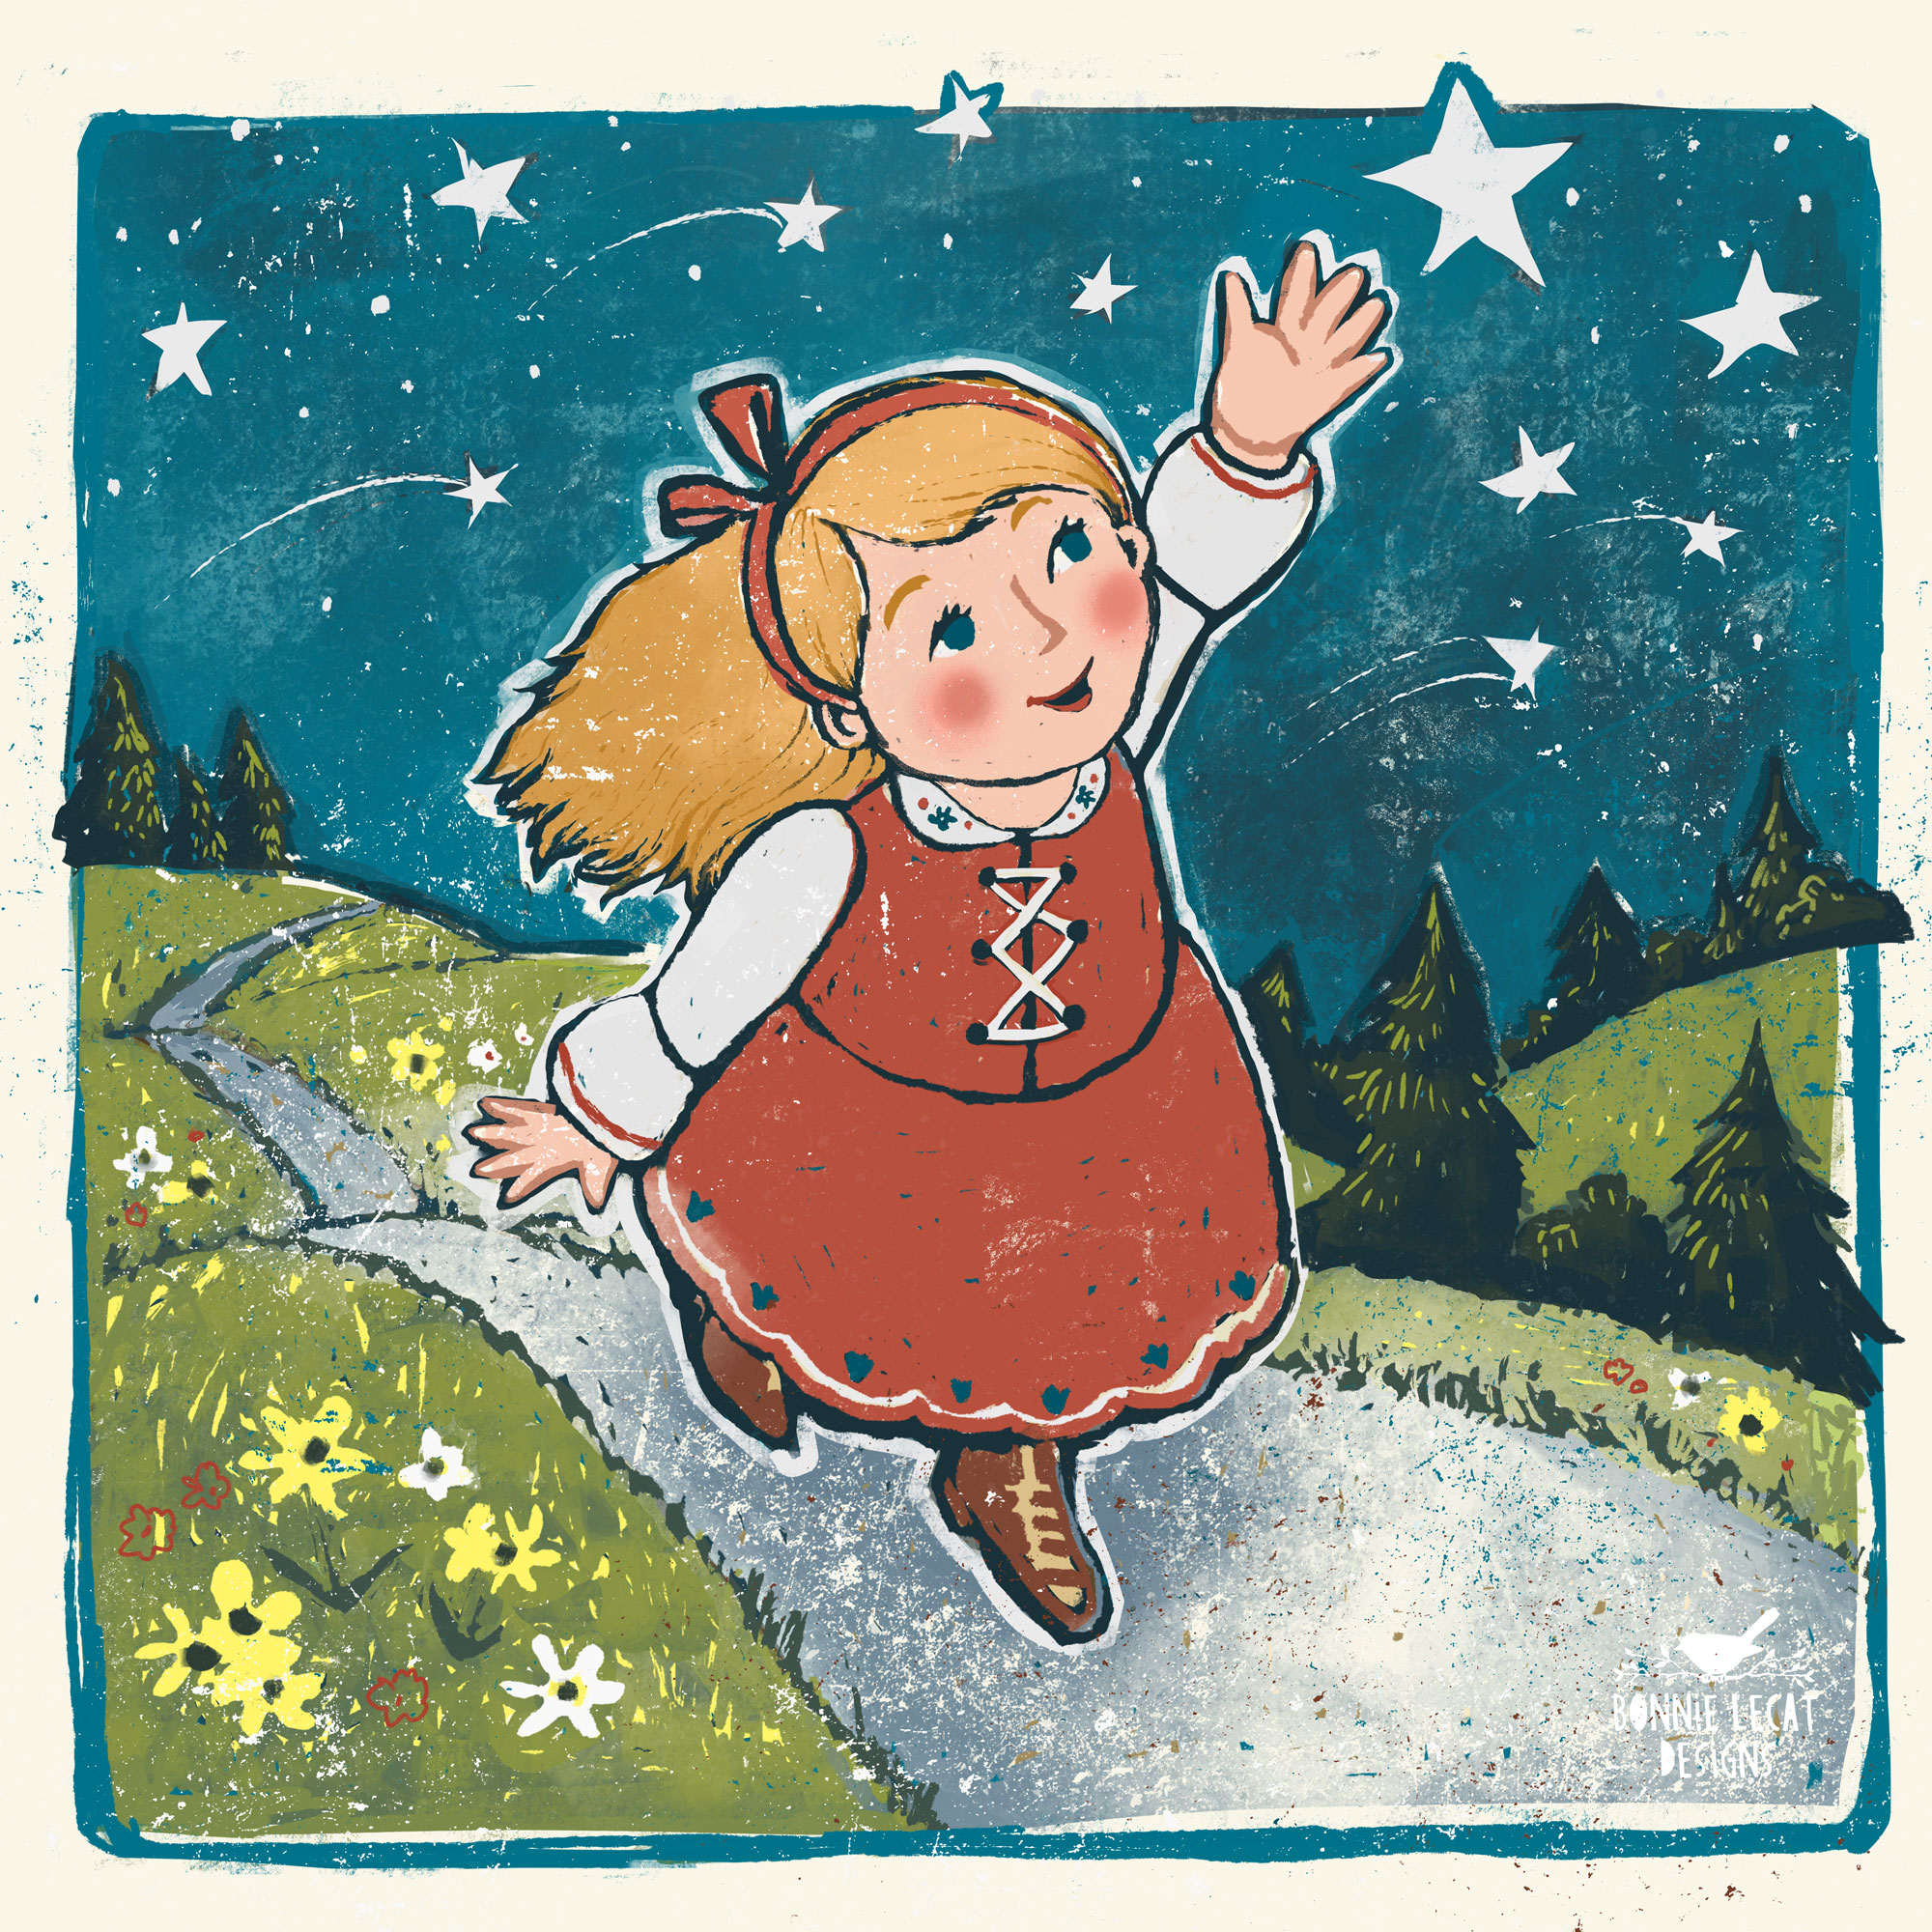 Reach for the Stars children's book illustration by artist Bonnie Lecat